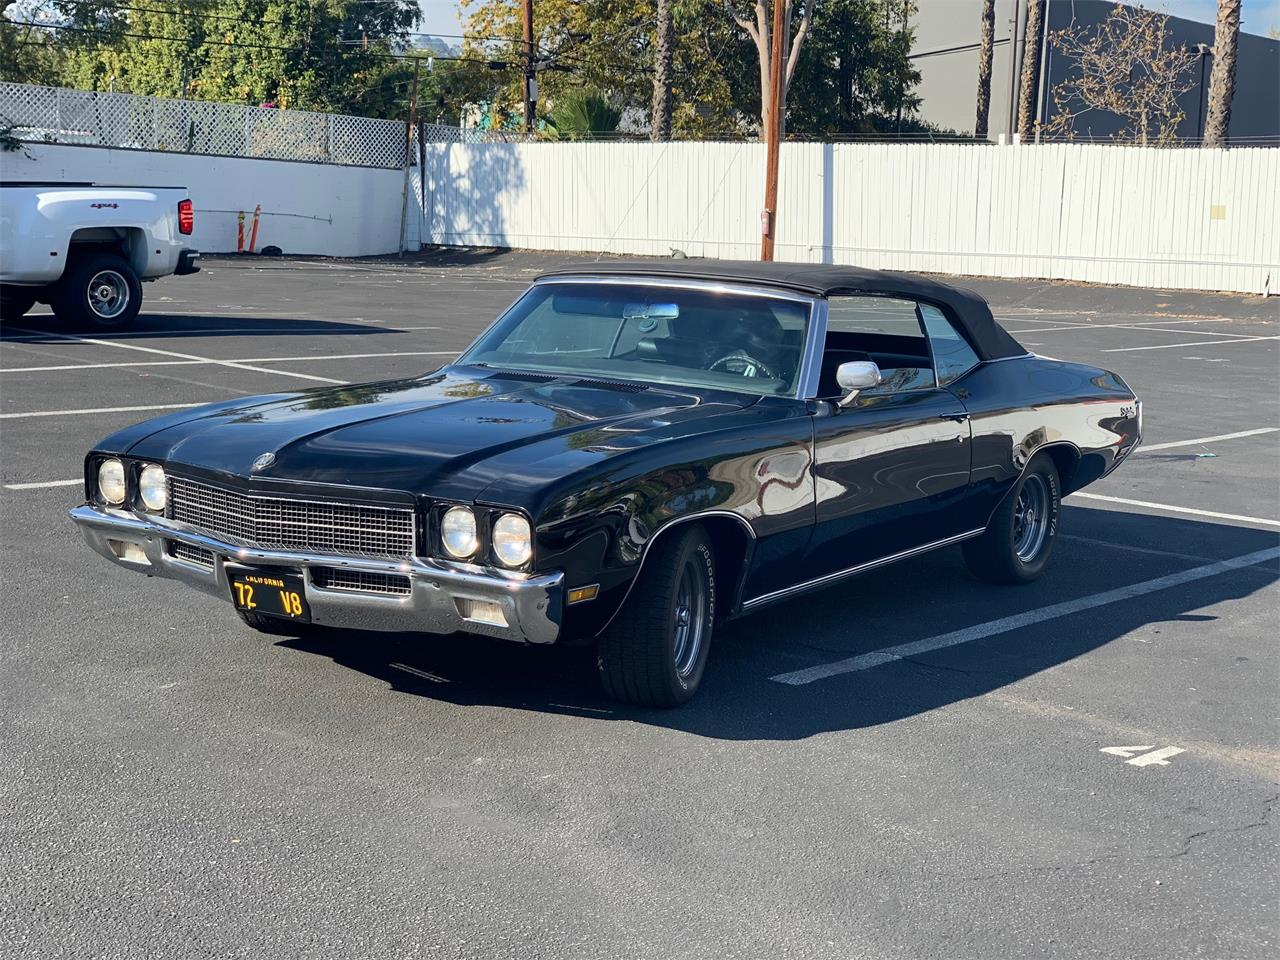 1972 Buick Skylark GS Black for sale | Used Cars for Sale